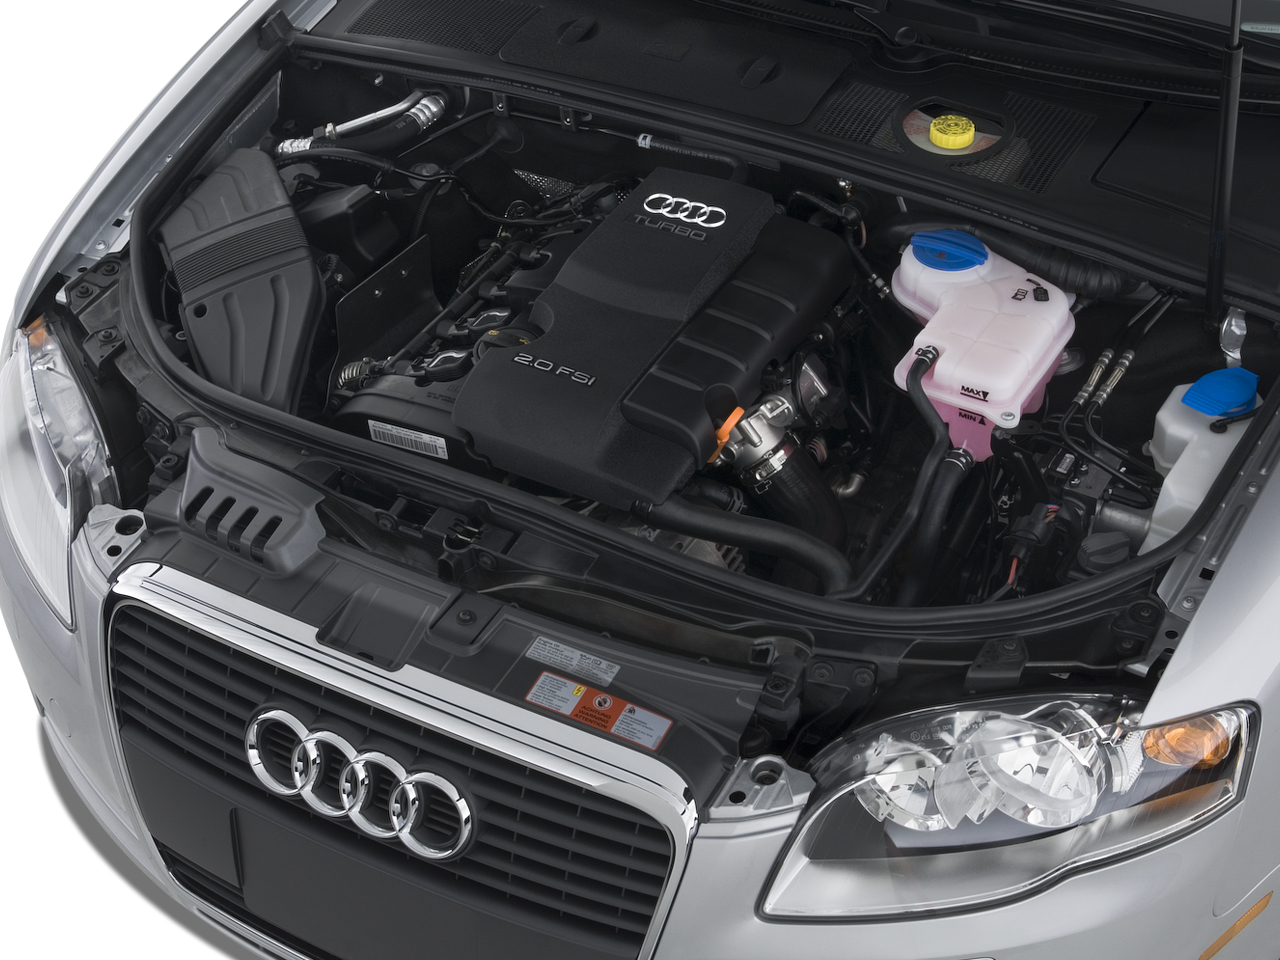 2009 audi a4 latest news features and auto show coverage rh automobilemag  com 2009 audi a4 2.0t quattro engine diagram